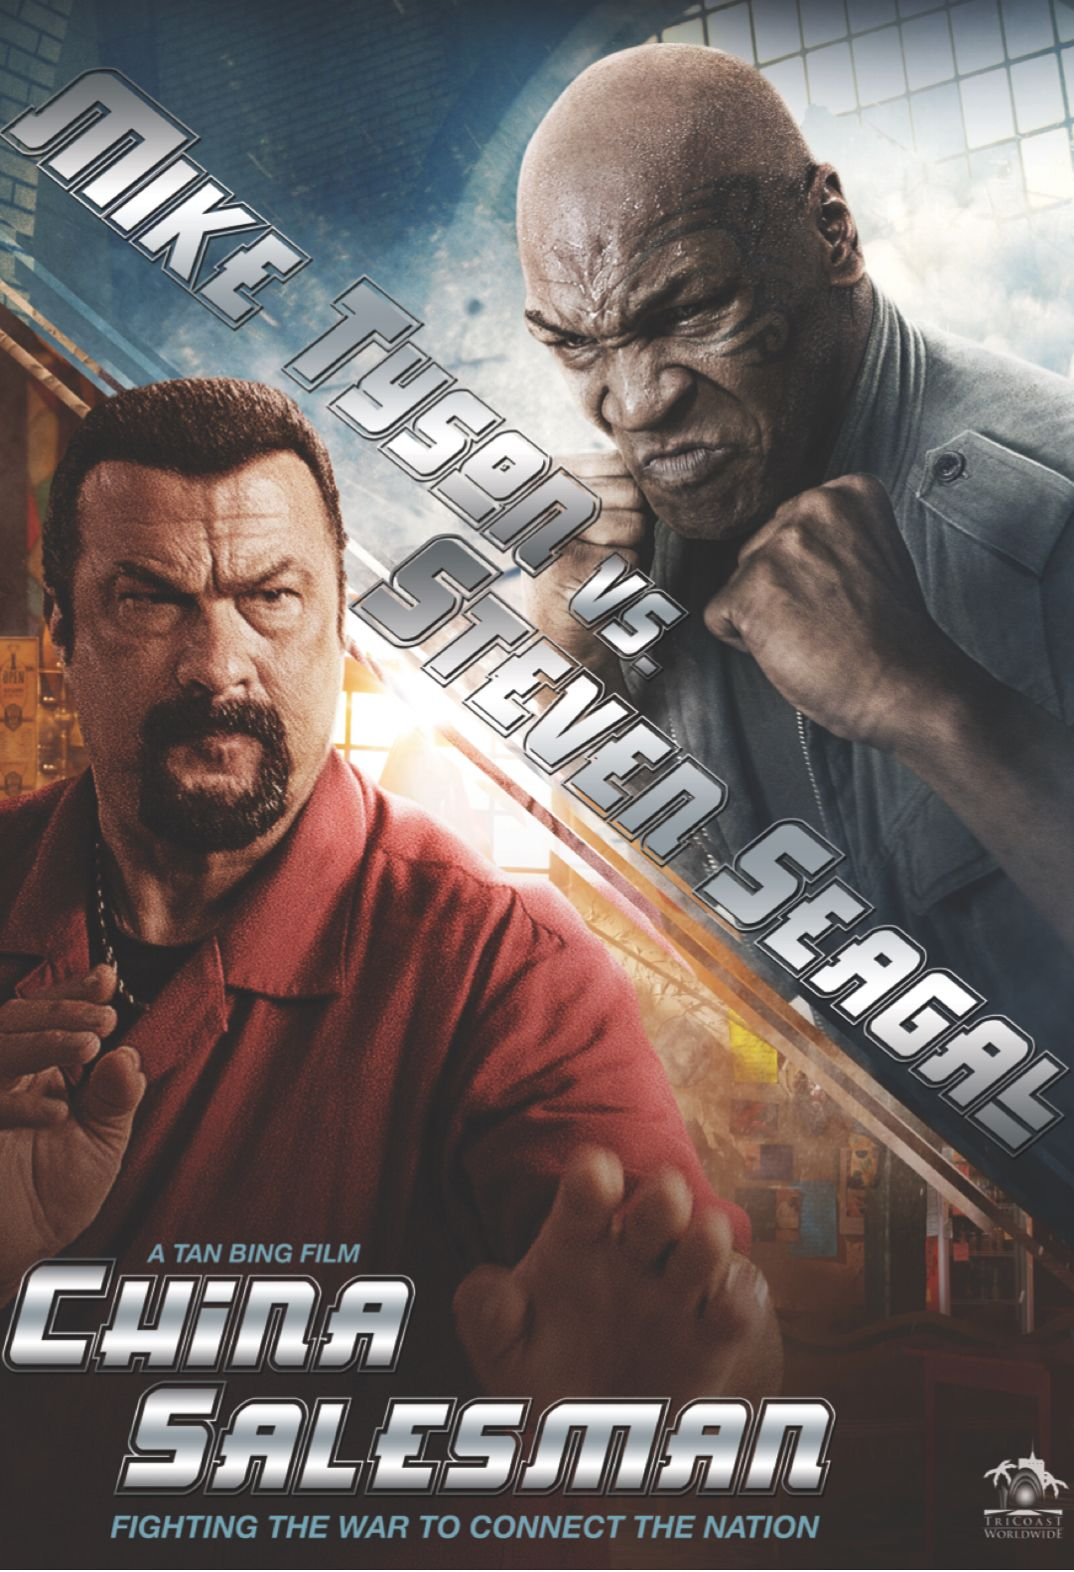 Steven Seagal And Mike Tyson S China Salesman Is The Most Afm Film Of Afm American Film Market Festival Steven Seagal Mike Tyson Film Fighting